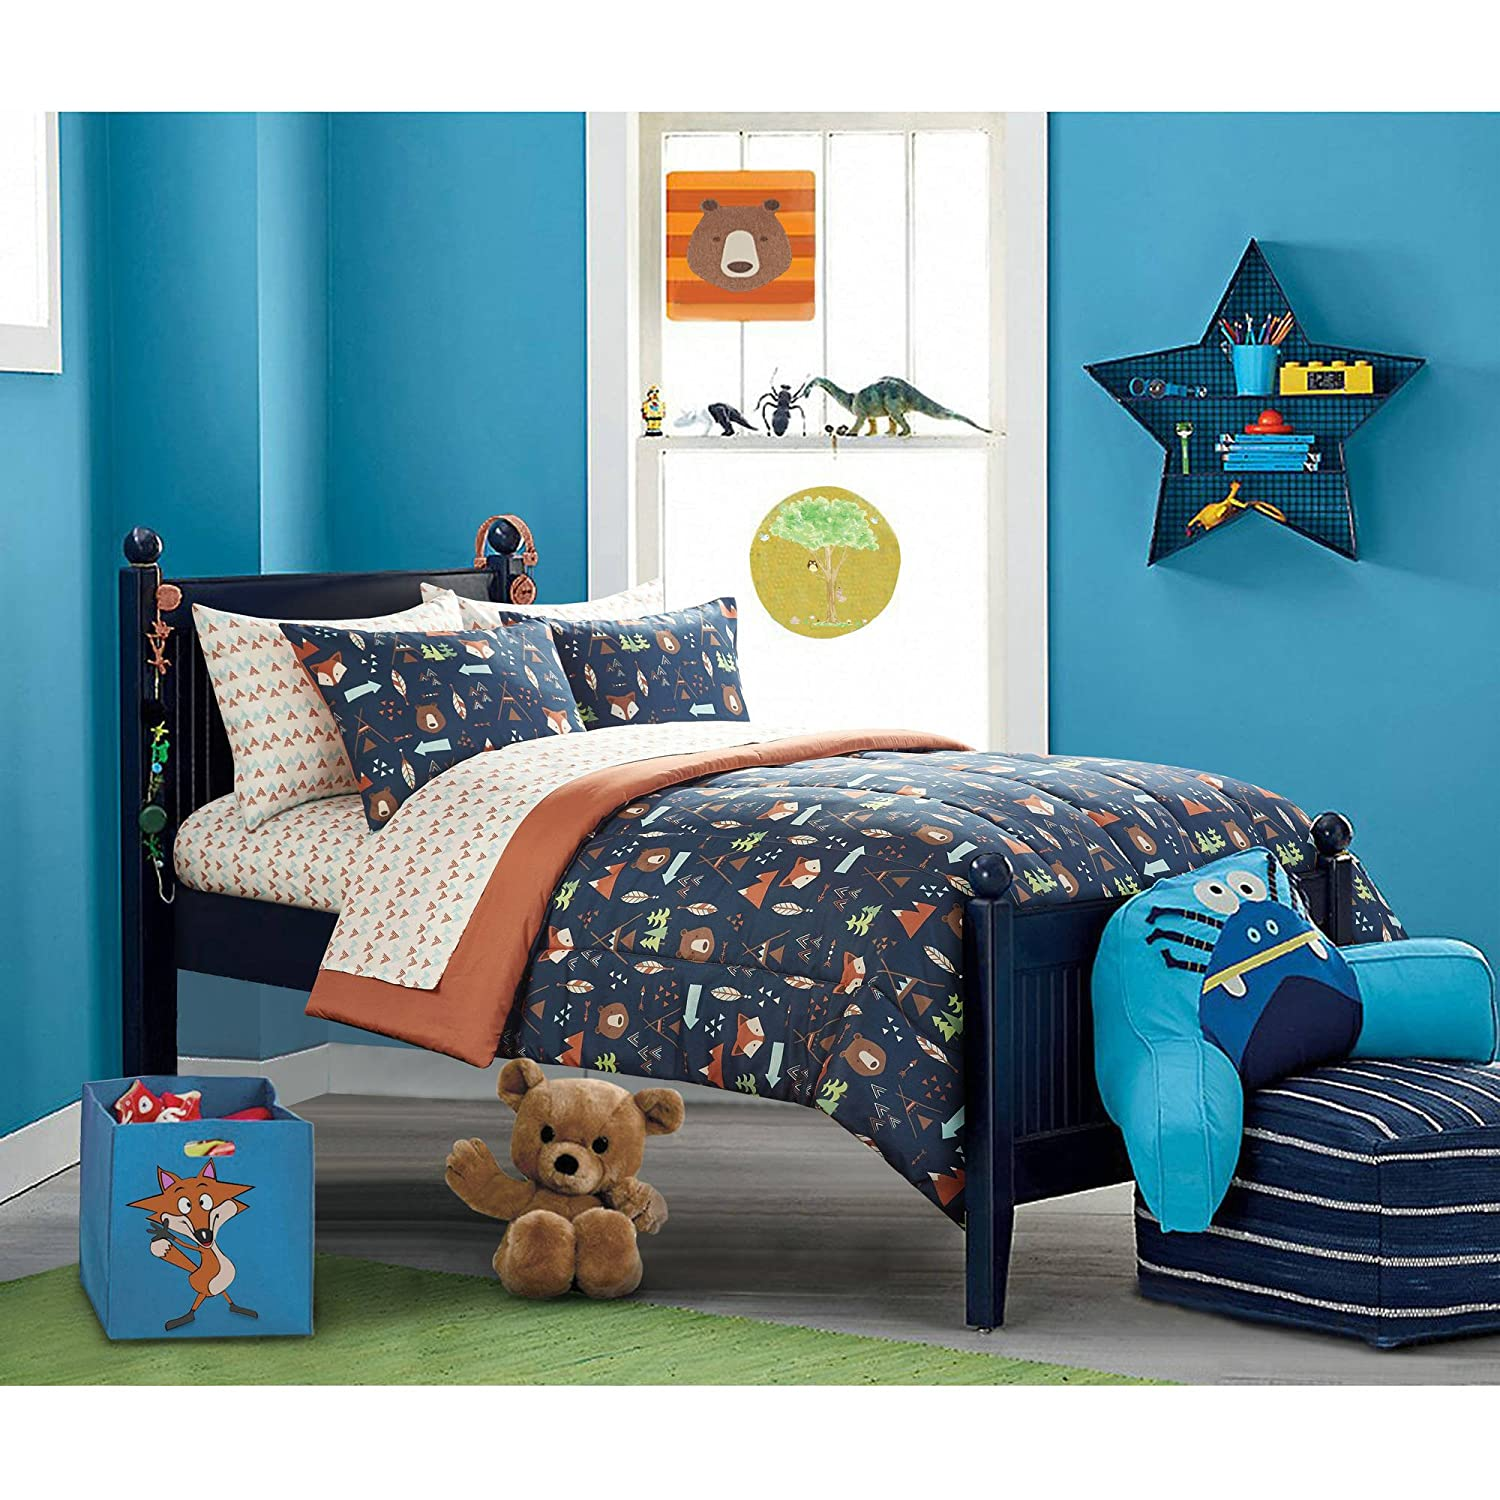 boy bedroom sets cool mainstays bedding sets ease bedding with style 10912